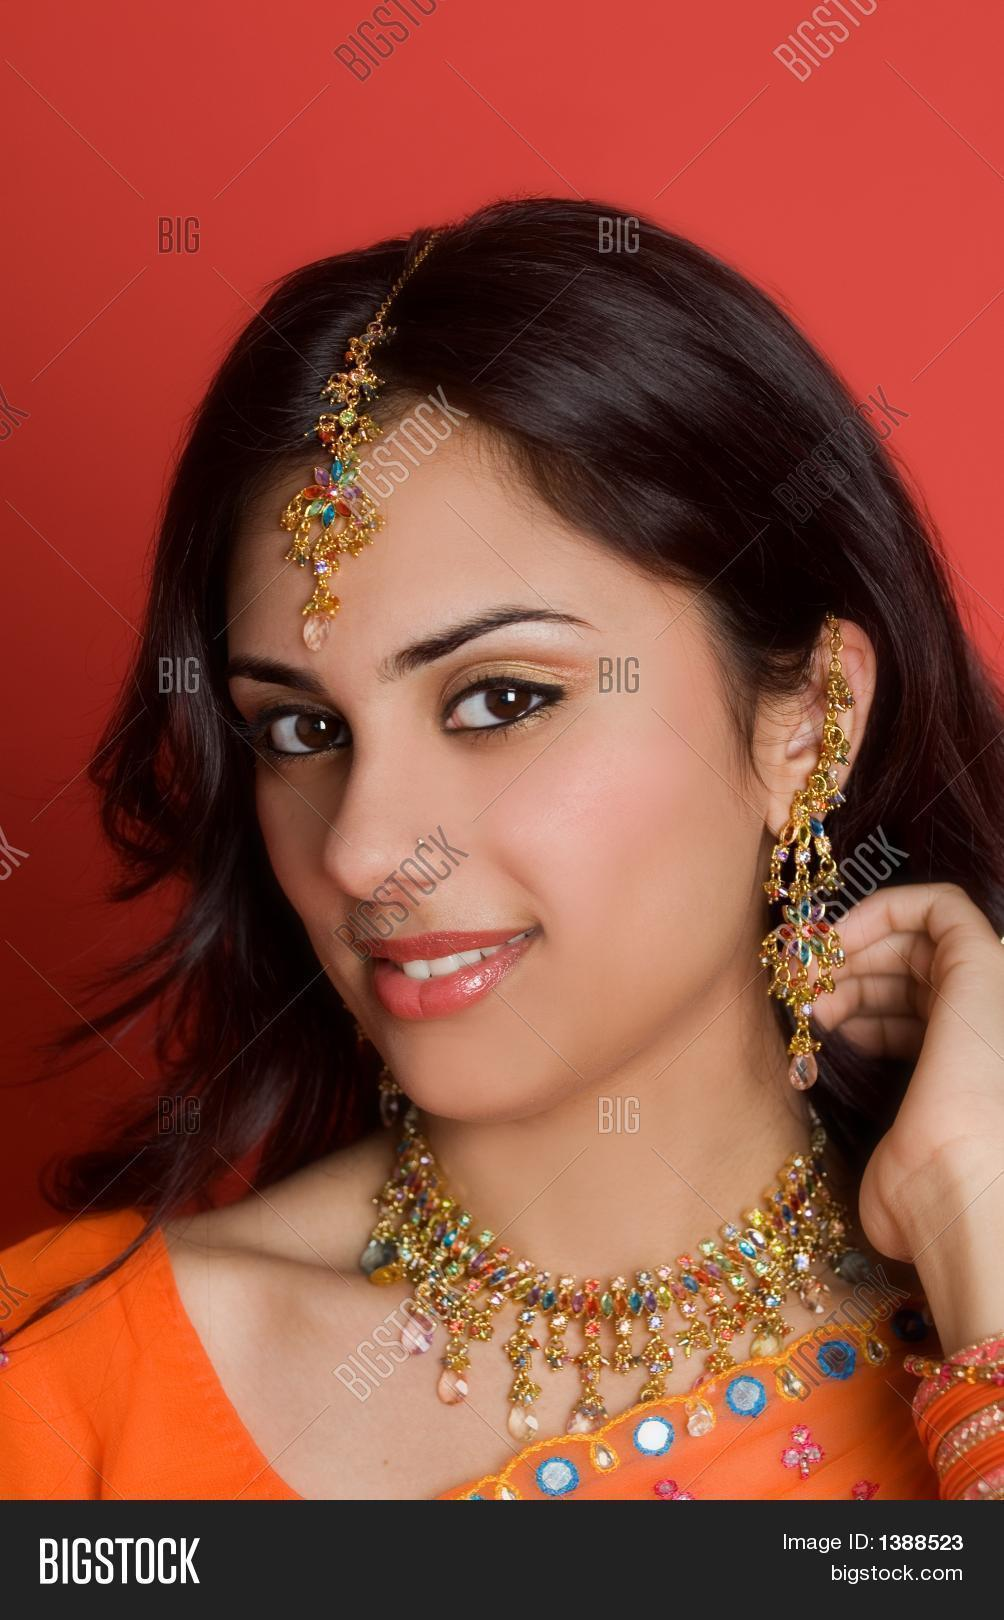 hindu single women in lincolnton Find women seeking men listings in lincolnton, nc on oodle classifieds join millions of people using oodle to find great personal ads.